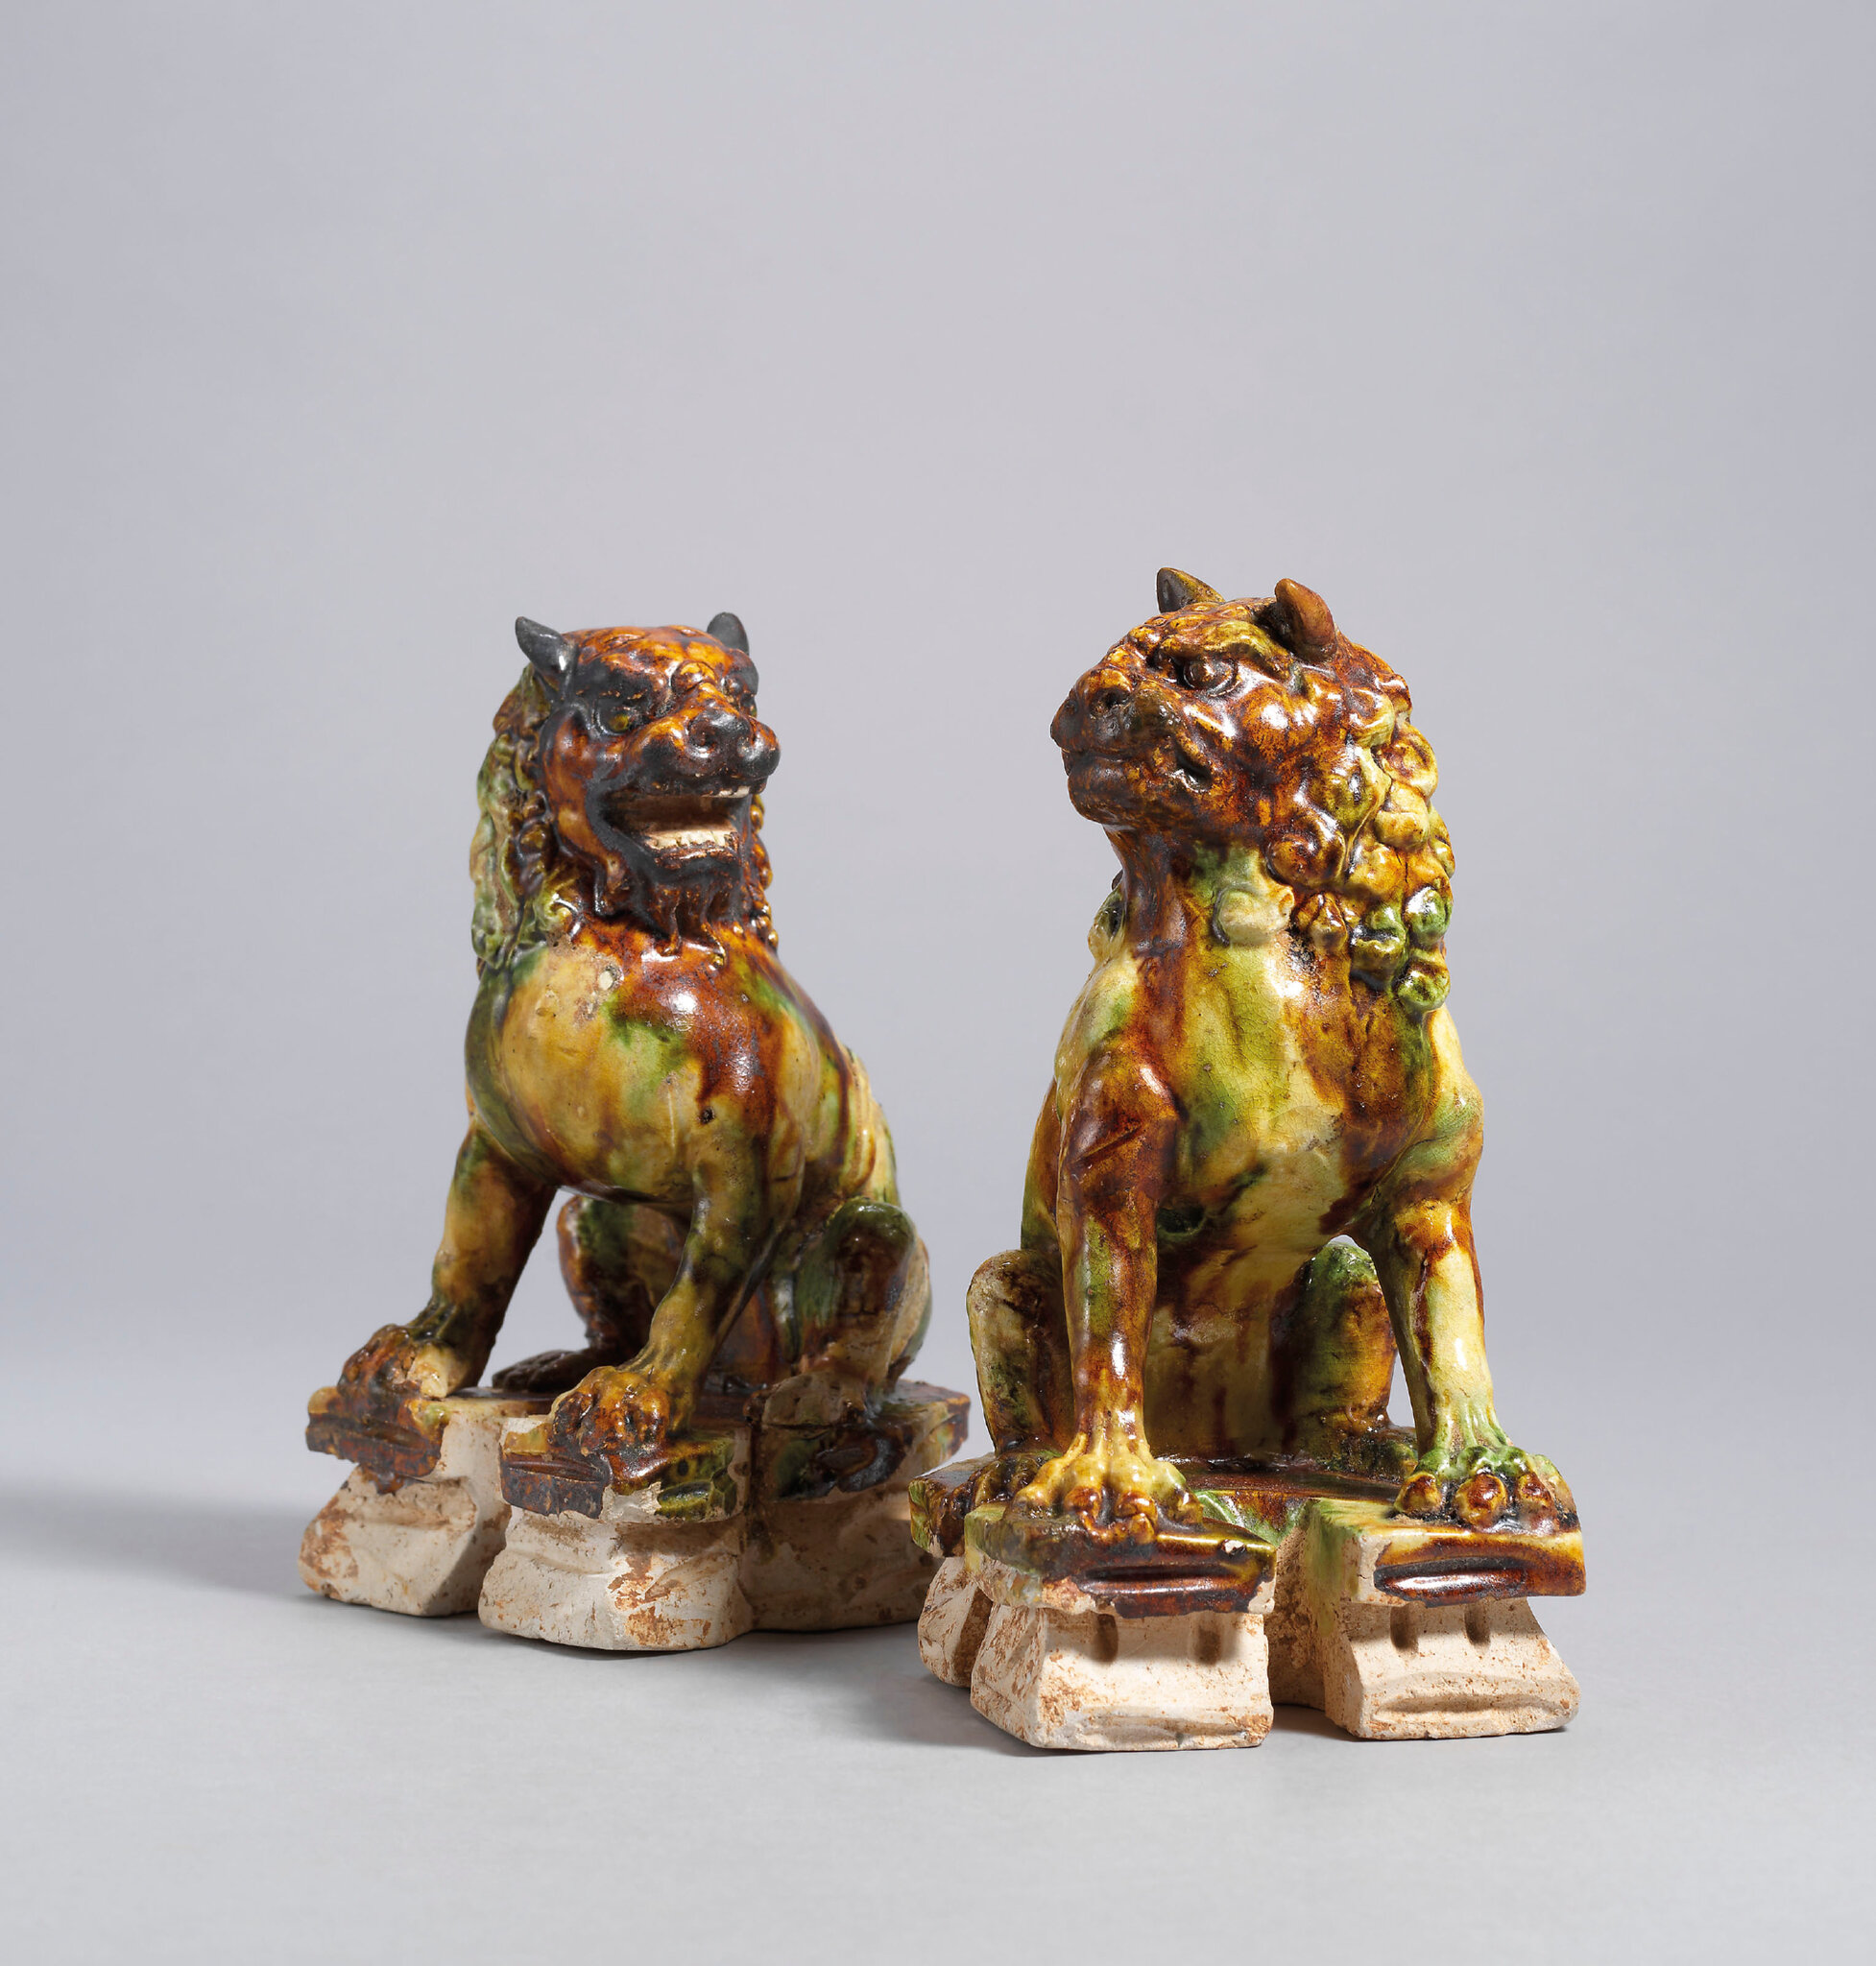 2020_HGK_18242_2872_000(a_rare_pair_of_sancai-glazed_pottery_lions_tang_dynasty)